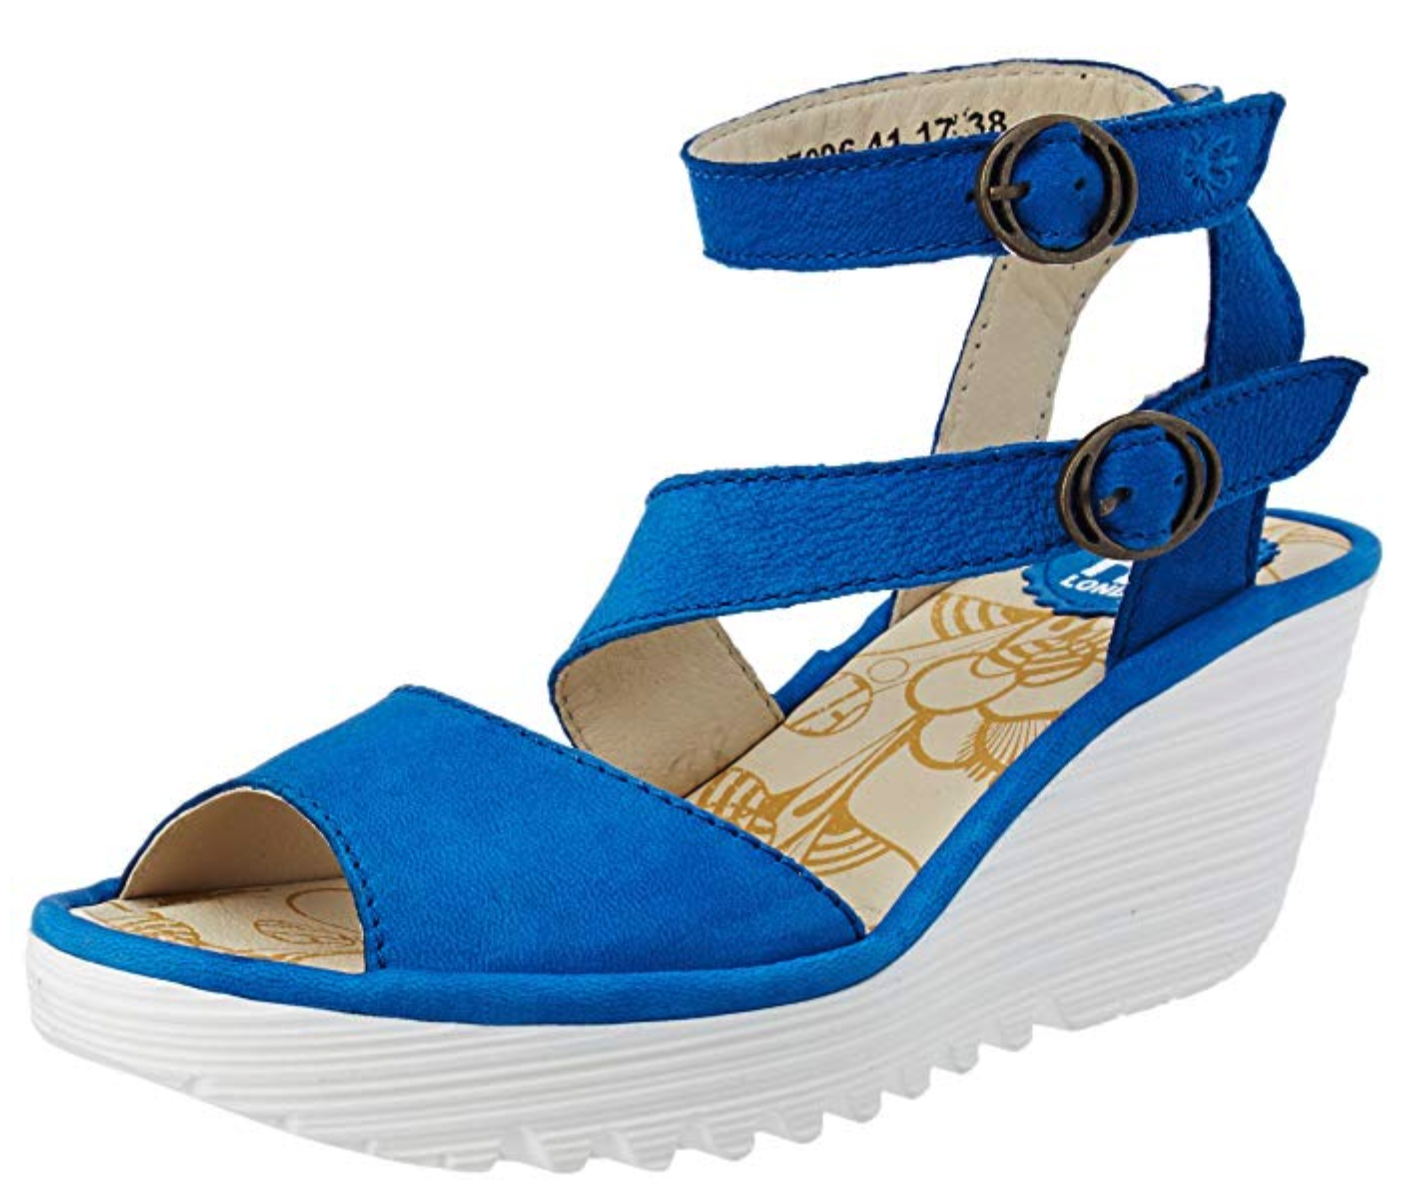 Fly London Yisk Electric bluee Leather Ankle Strap Wedge Sandals EU 38 39 40 41